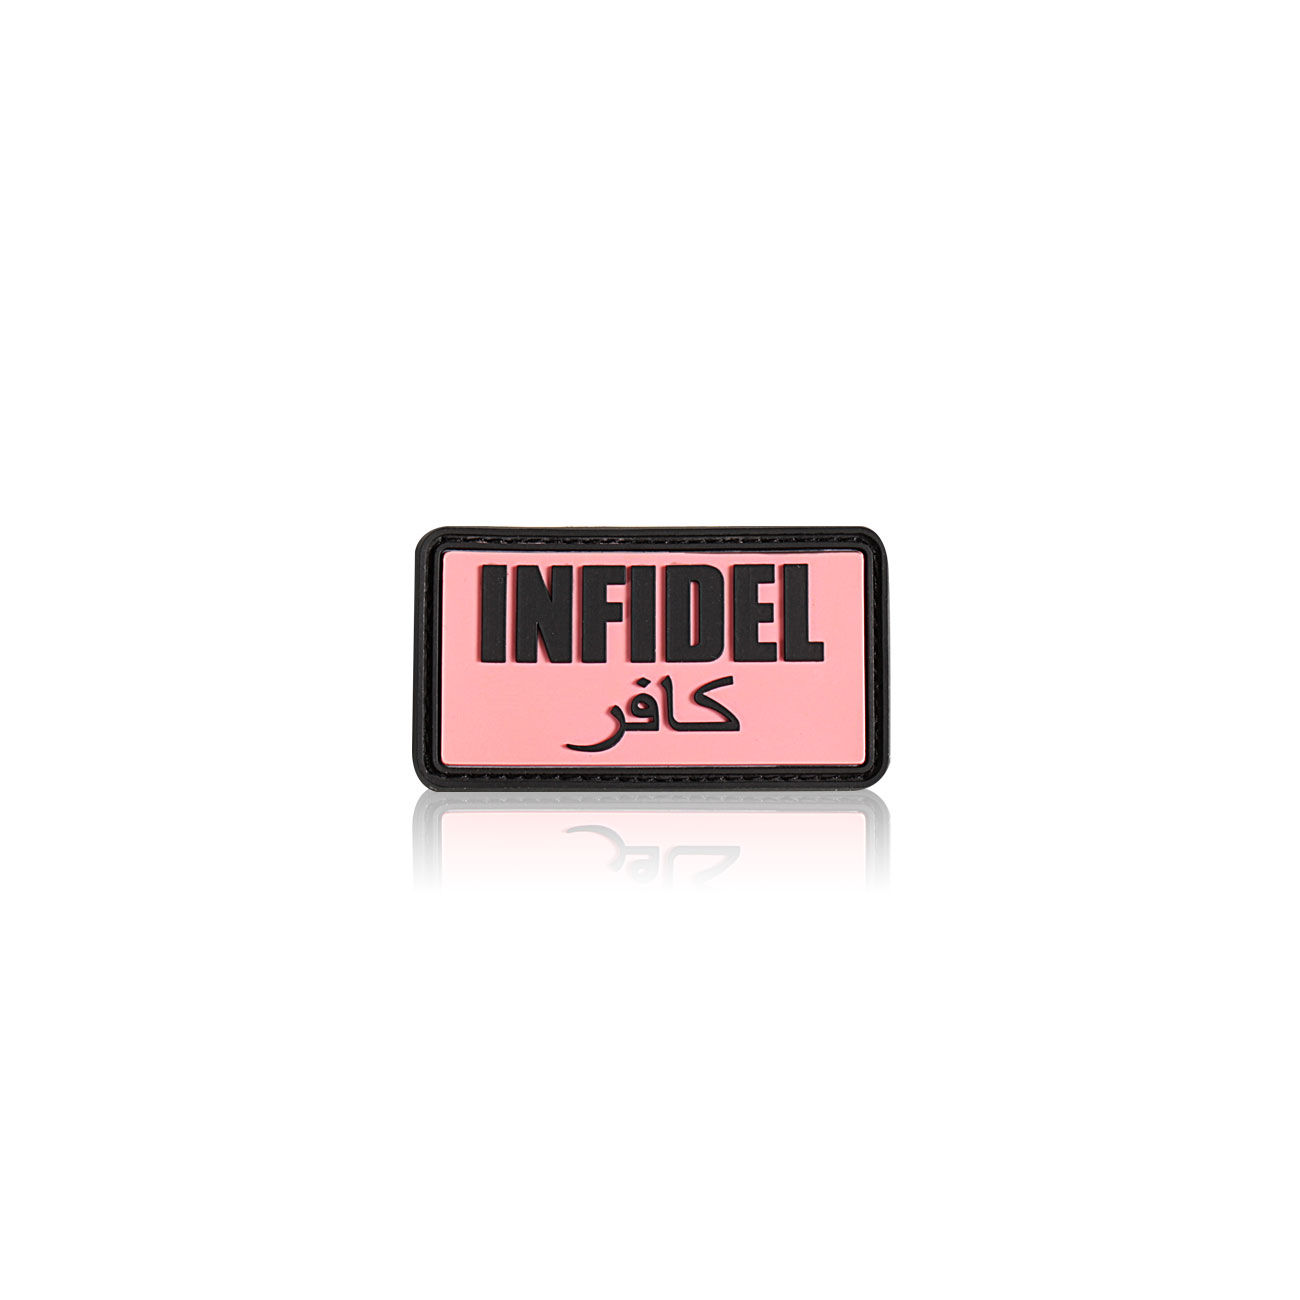 3D Rubber Patch Infidel pink schwarz 0